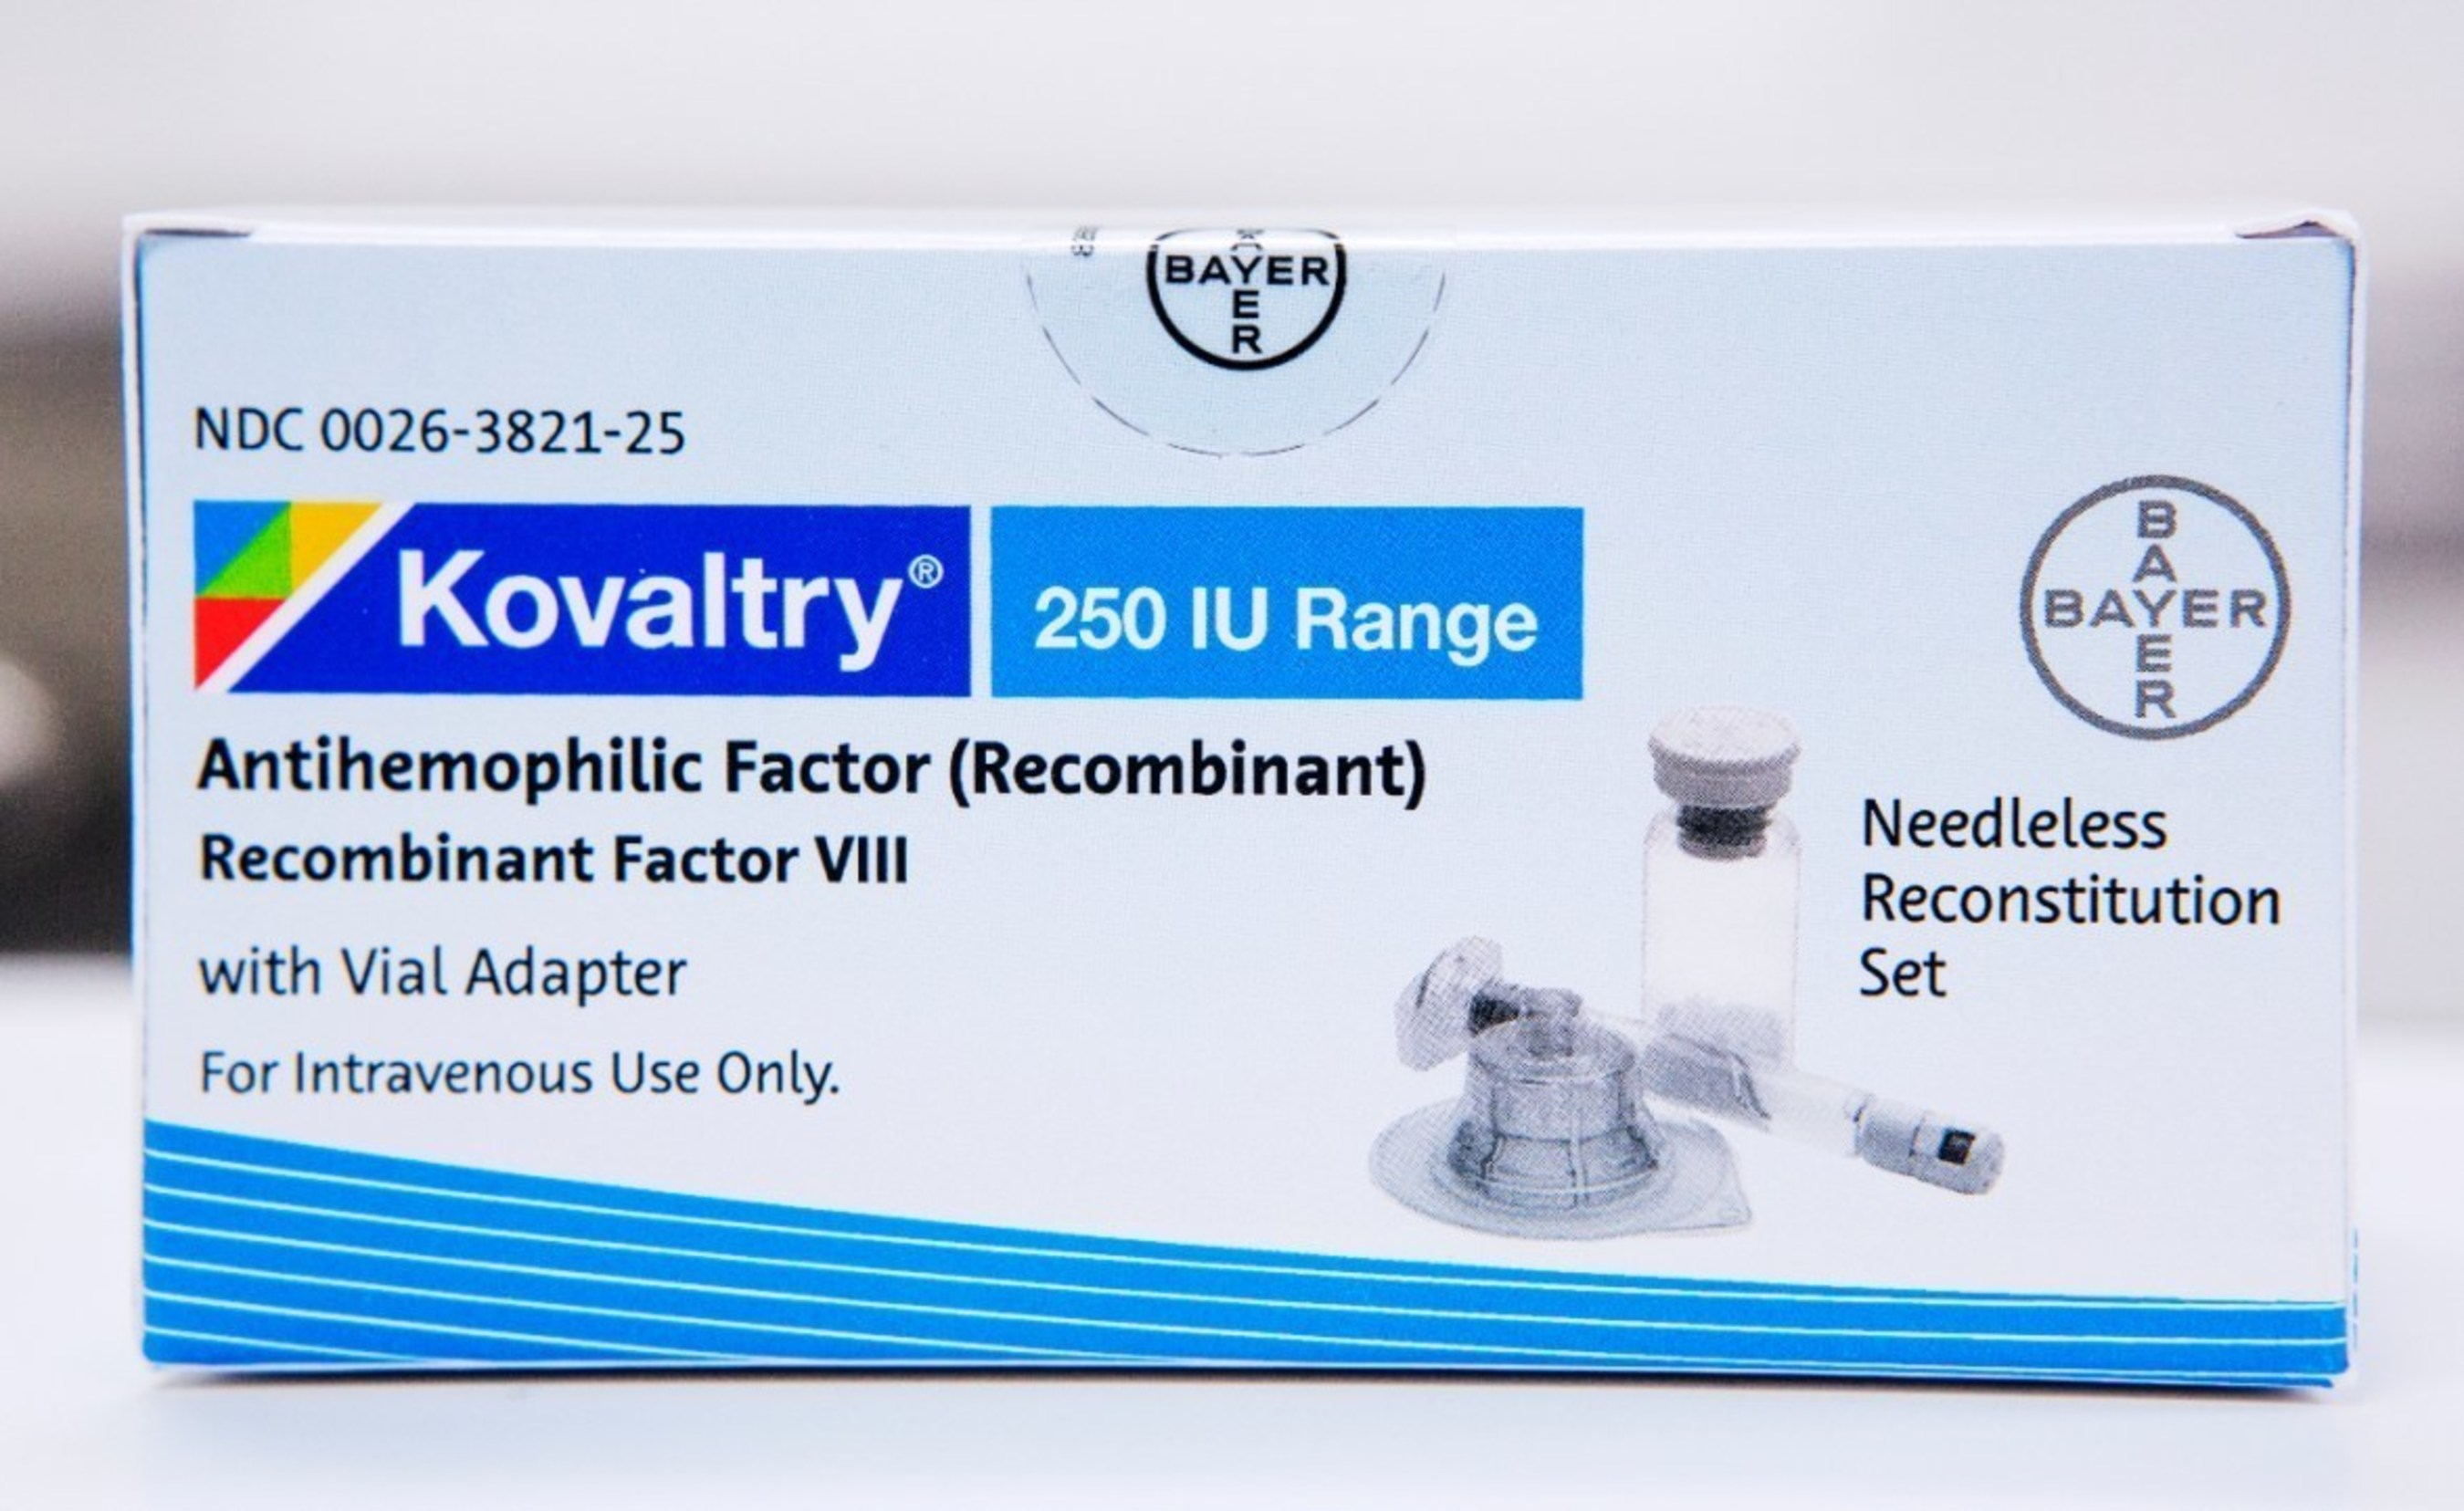 The FDA today approved Bayer's KOVALTRY(R) Antihemophilic Factor (Recombinant).